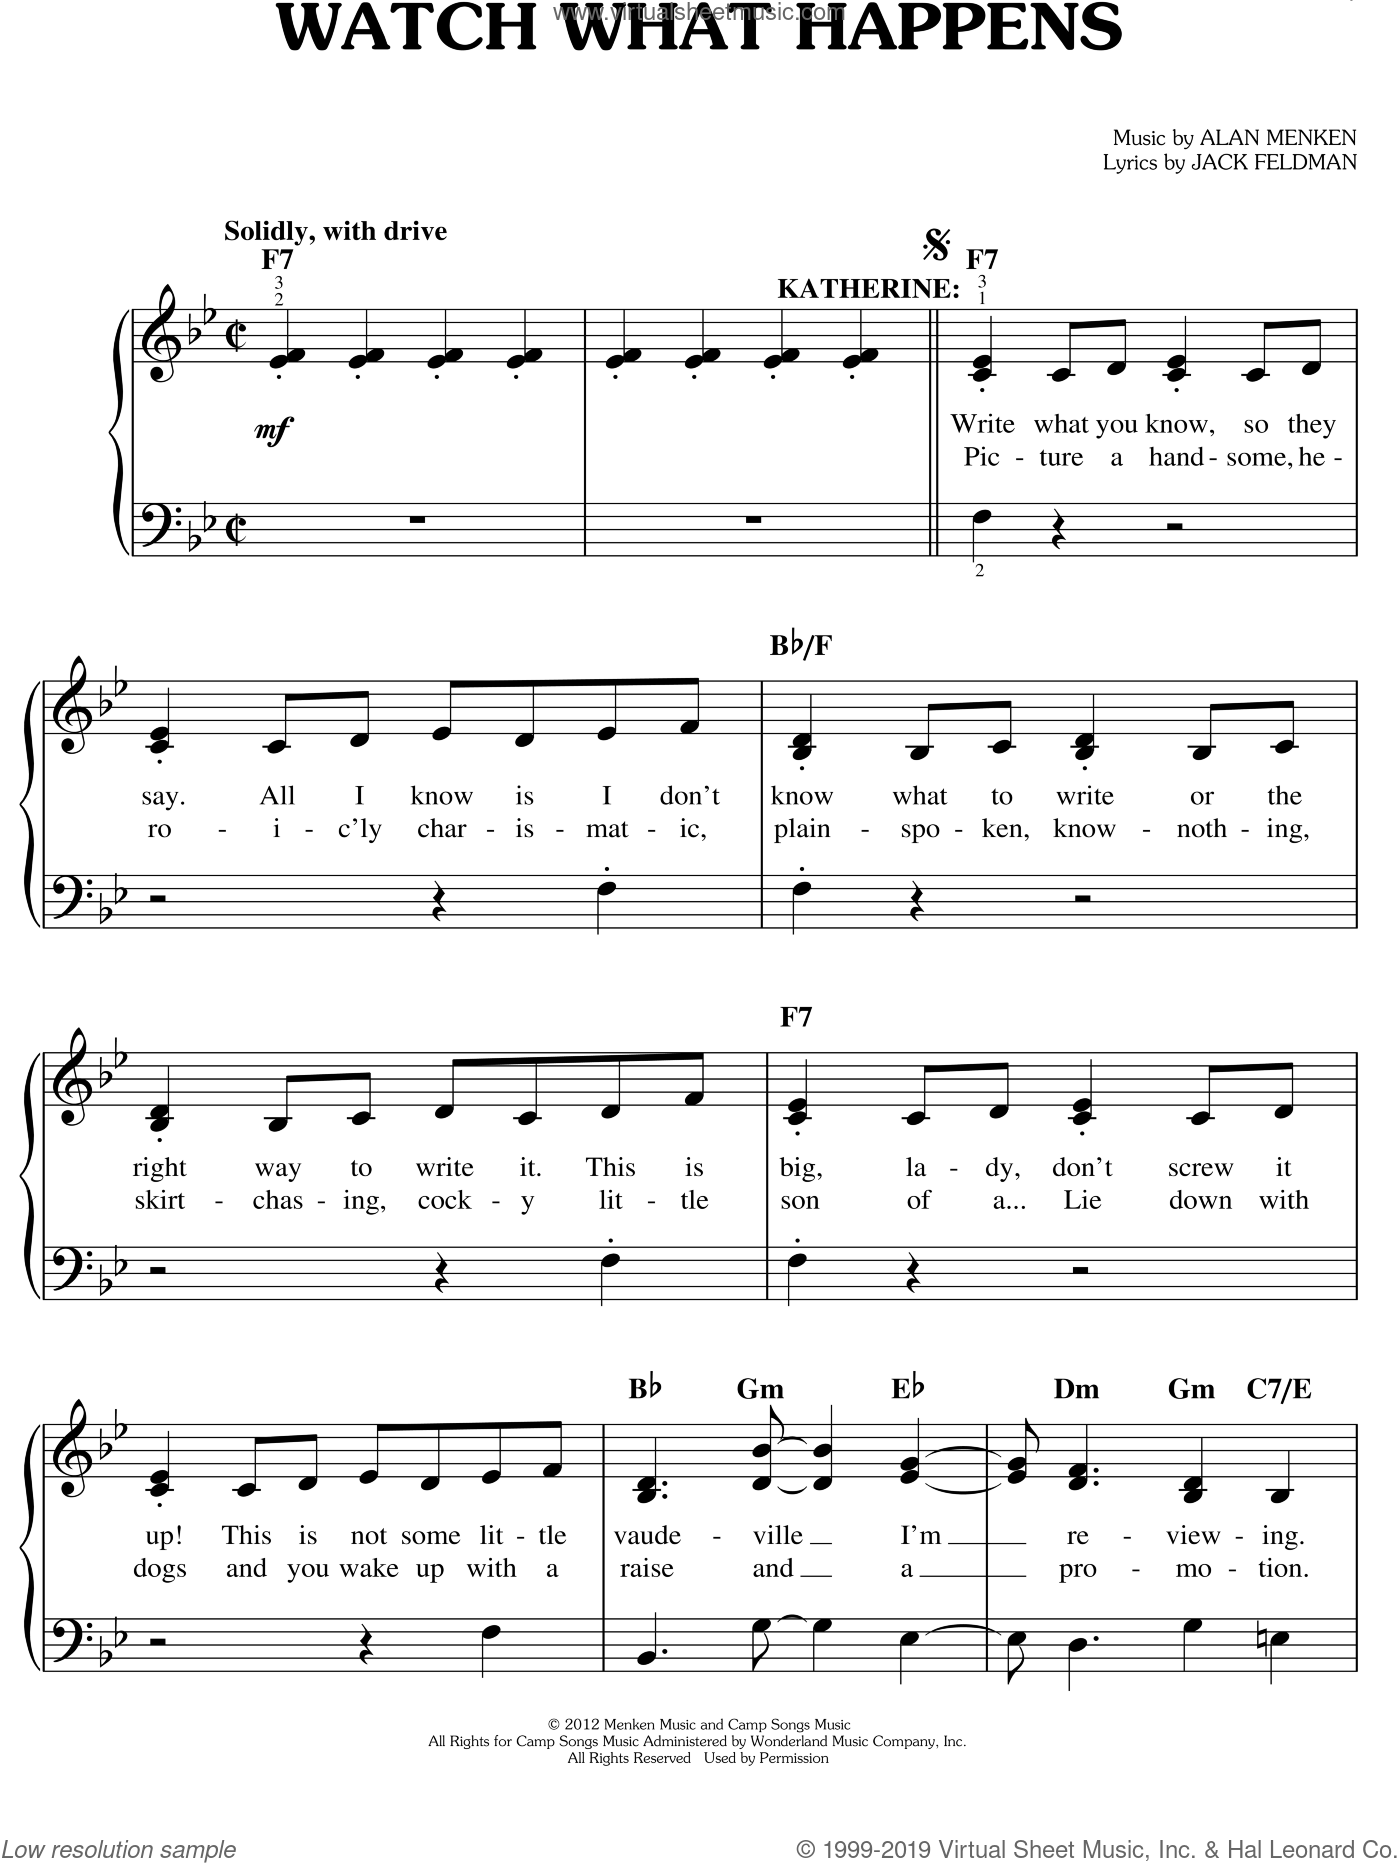 Watch What Happens sheet music for piano solo by Alan Menken, Jack Feldman and Newsies (Musical), easy skill level